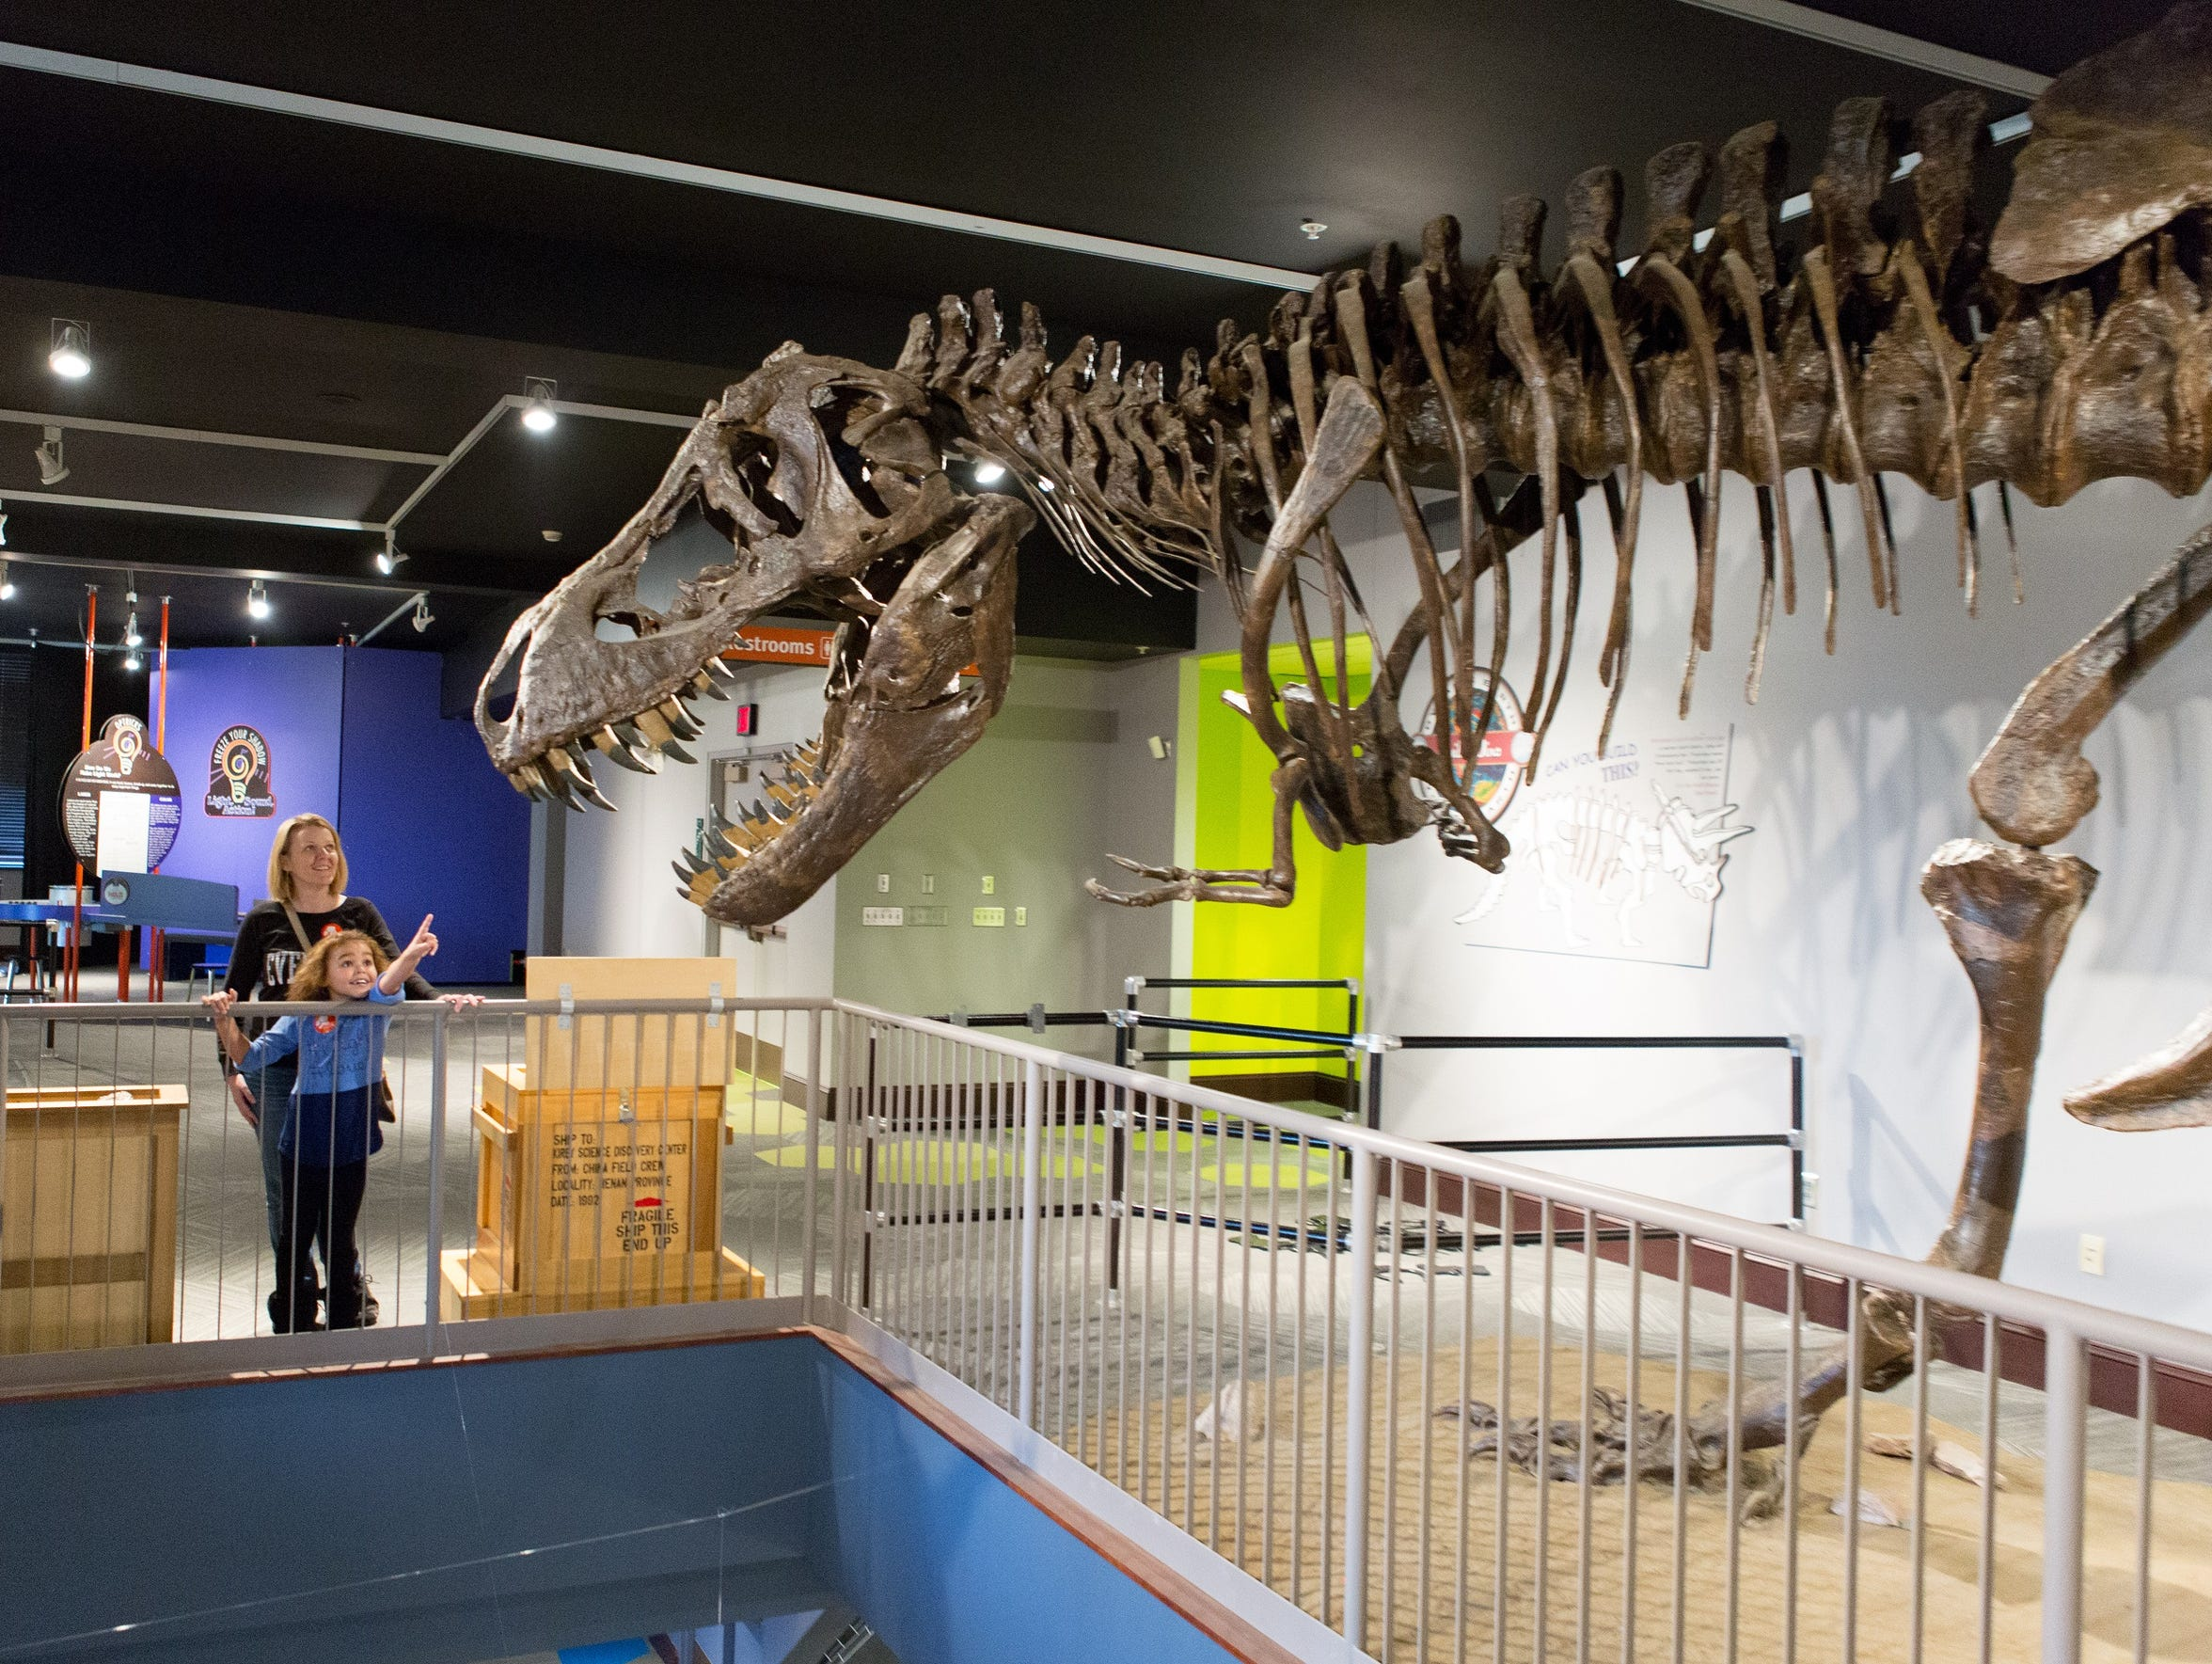 Stan, the T-Rex, in the Kirby Science Discovery Center